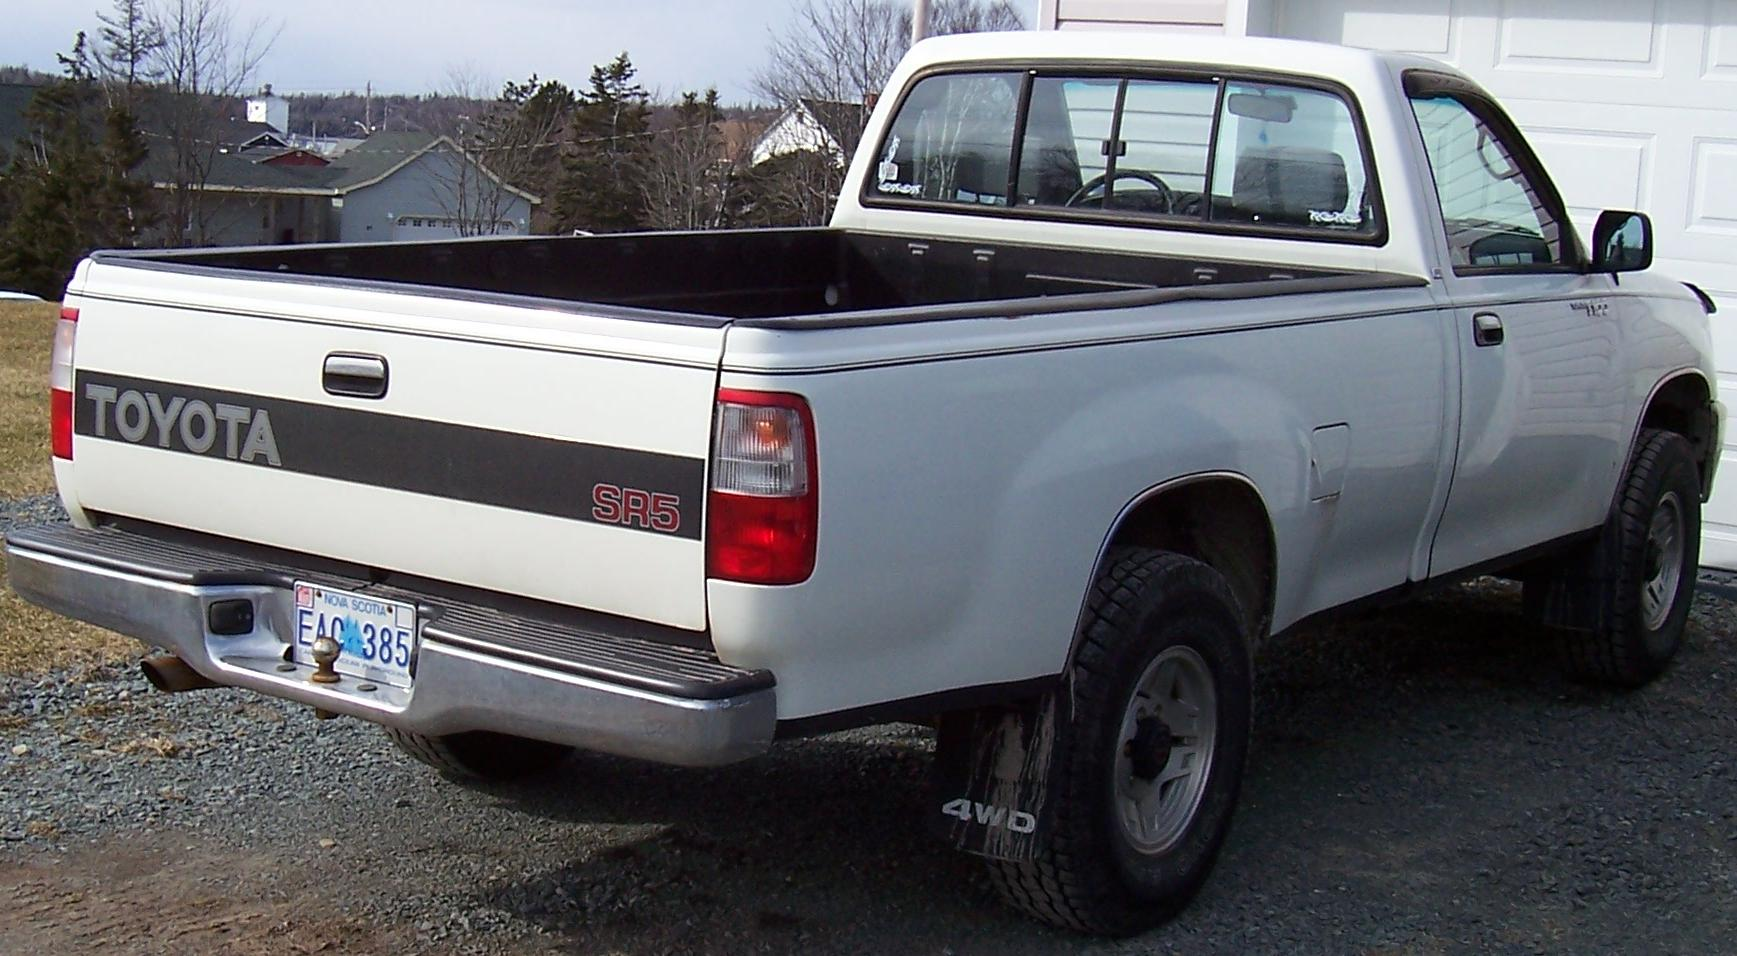 1993 Toyota T100 4X4 rear view